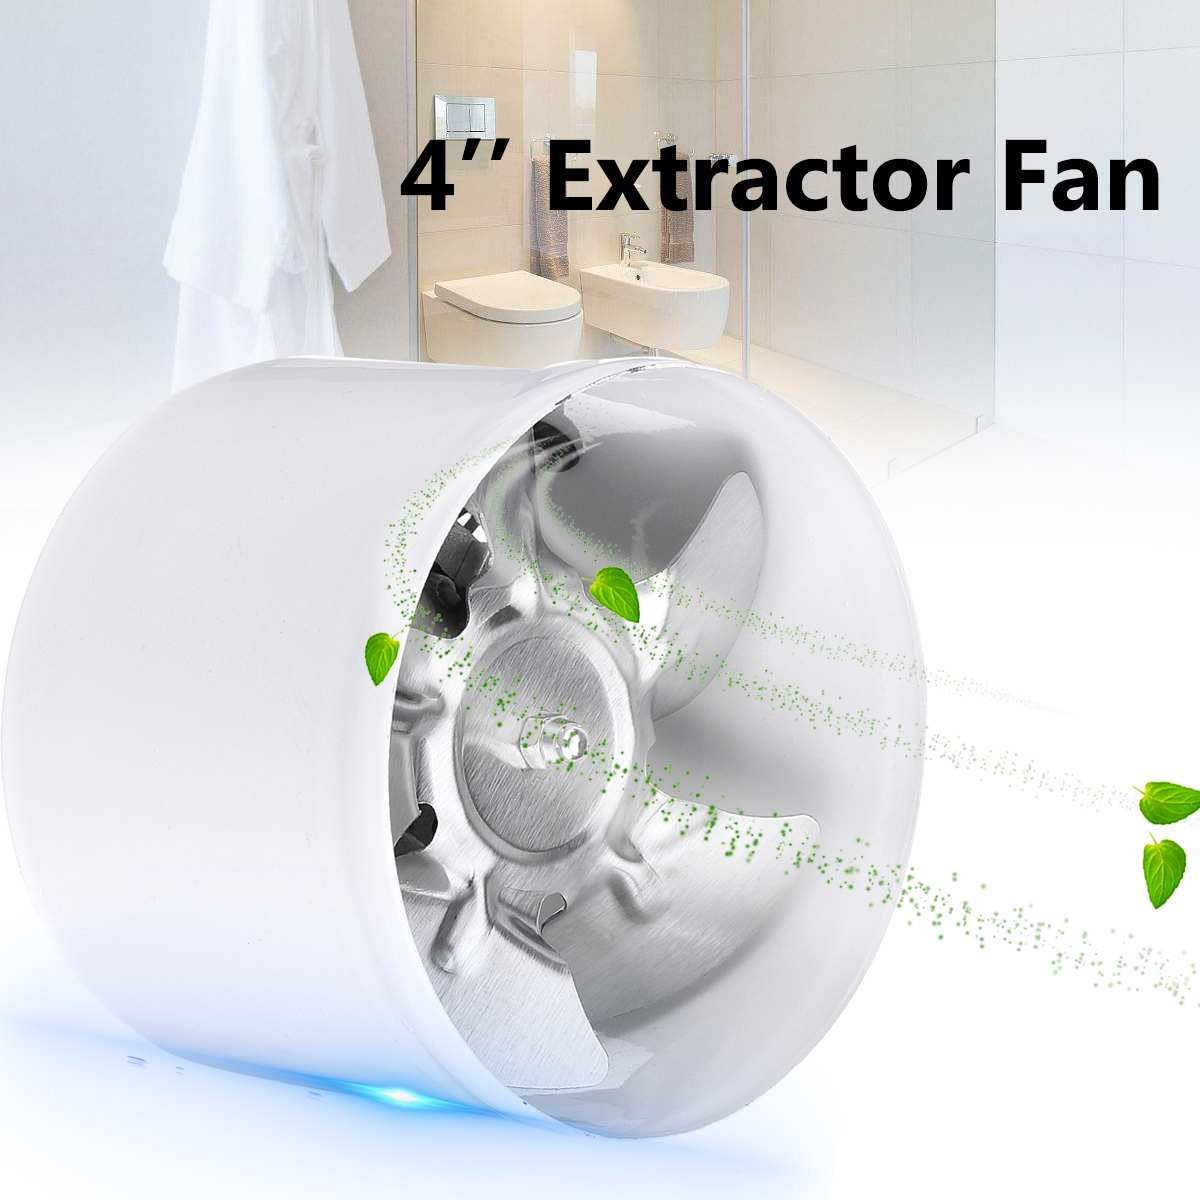 220V 4'' 25W Exhaust Blower Silent Wall Extractor Ventilation Fan Window Bathroom Kitchen Toilet Cooling Vents Ventilator Fan